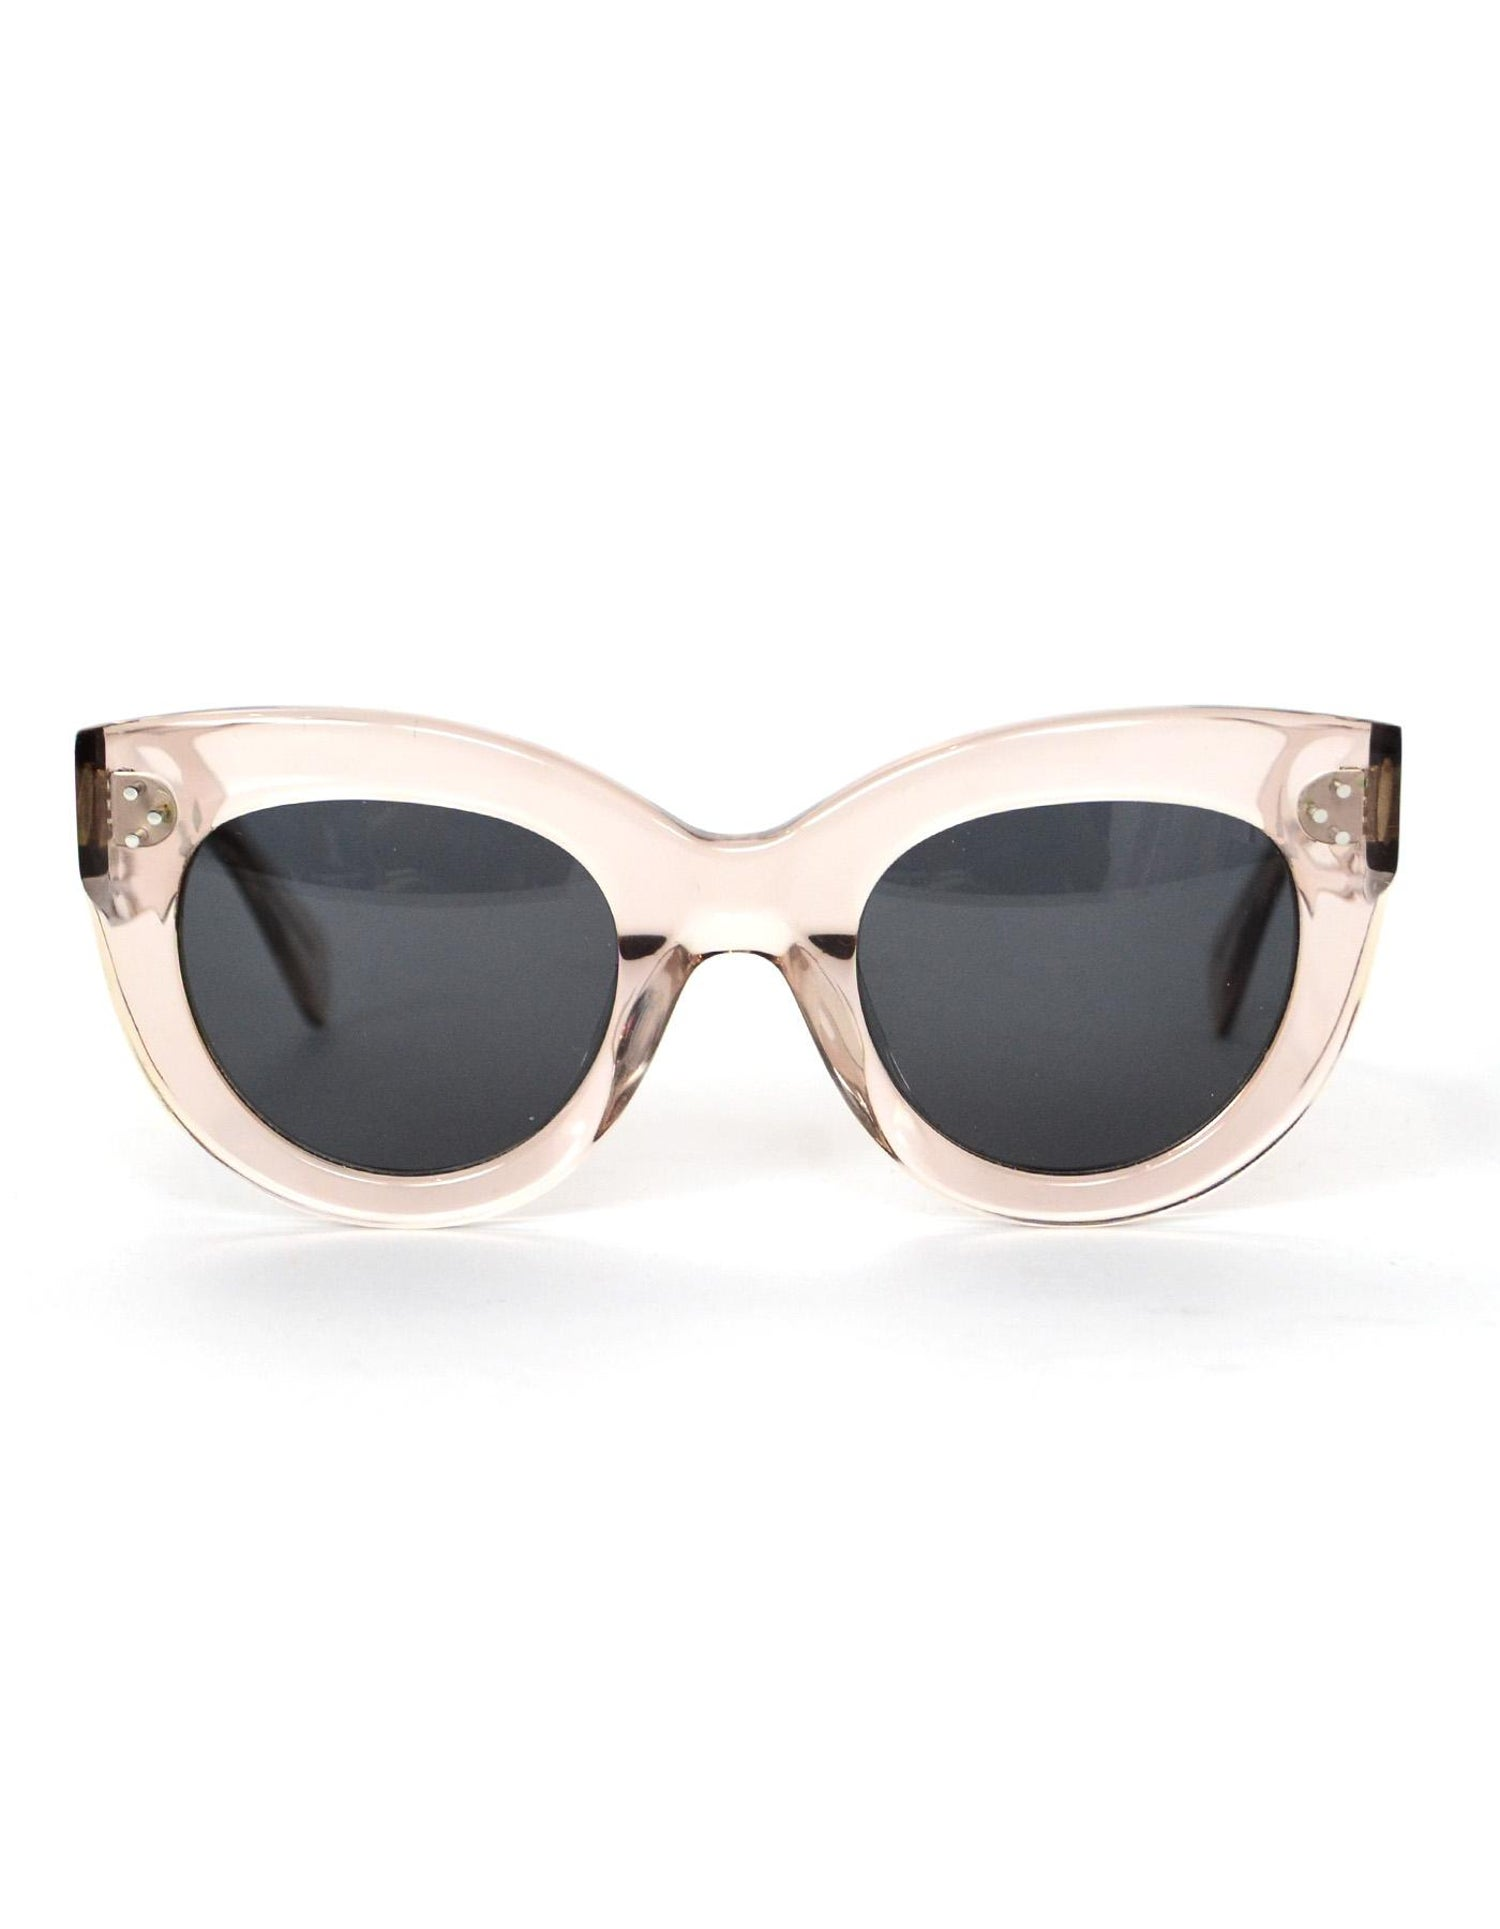 0b0b52b57a Celine Transparent Peach Clear Cat Eye Sunglasses with Case For Sale at  1stdibs